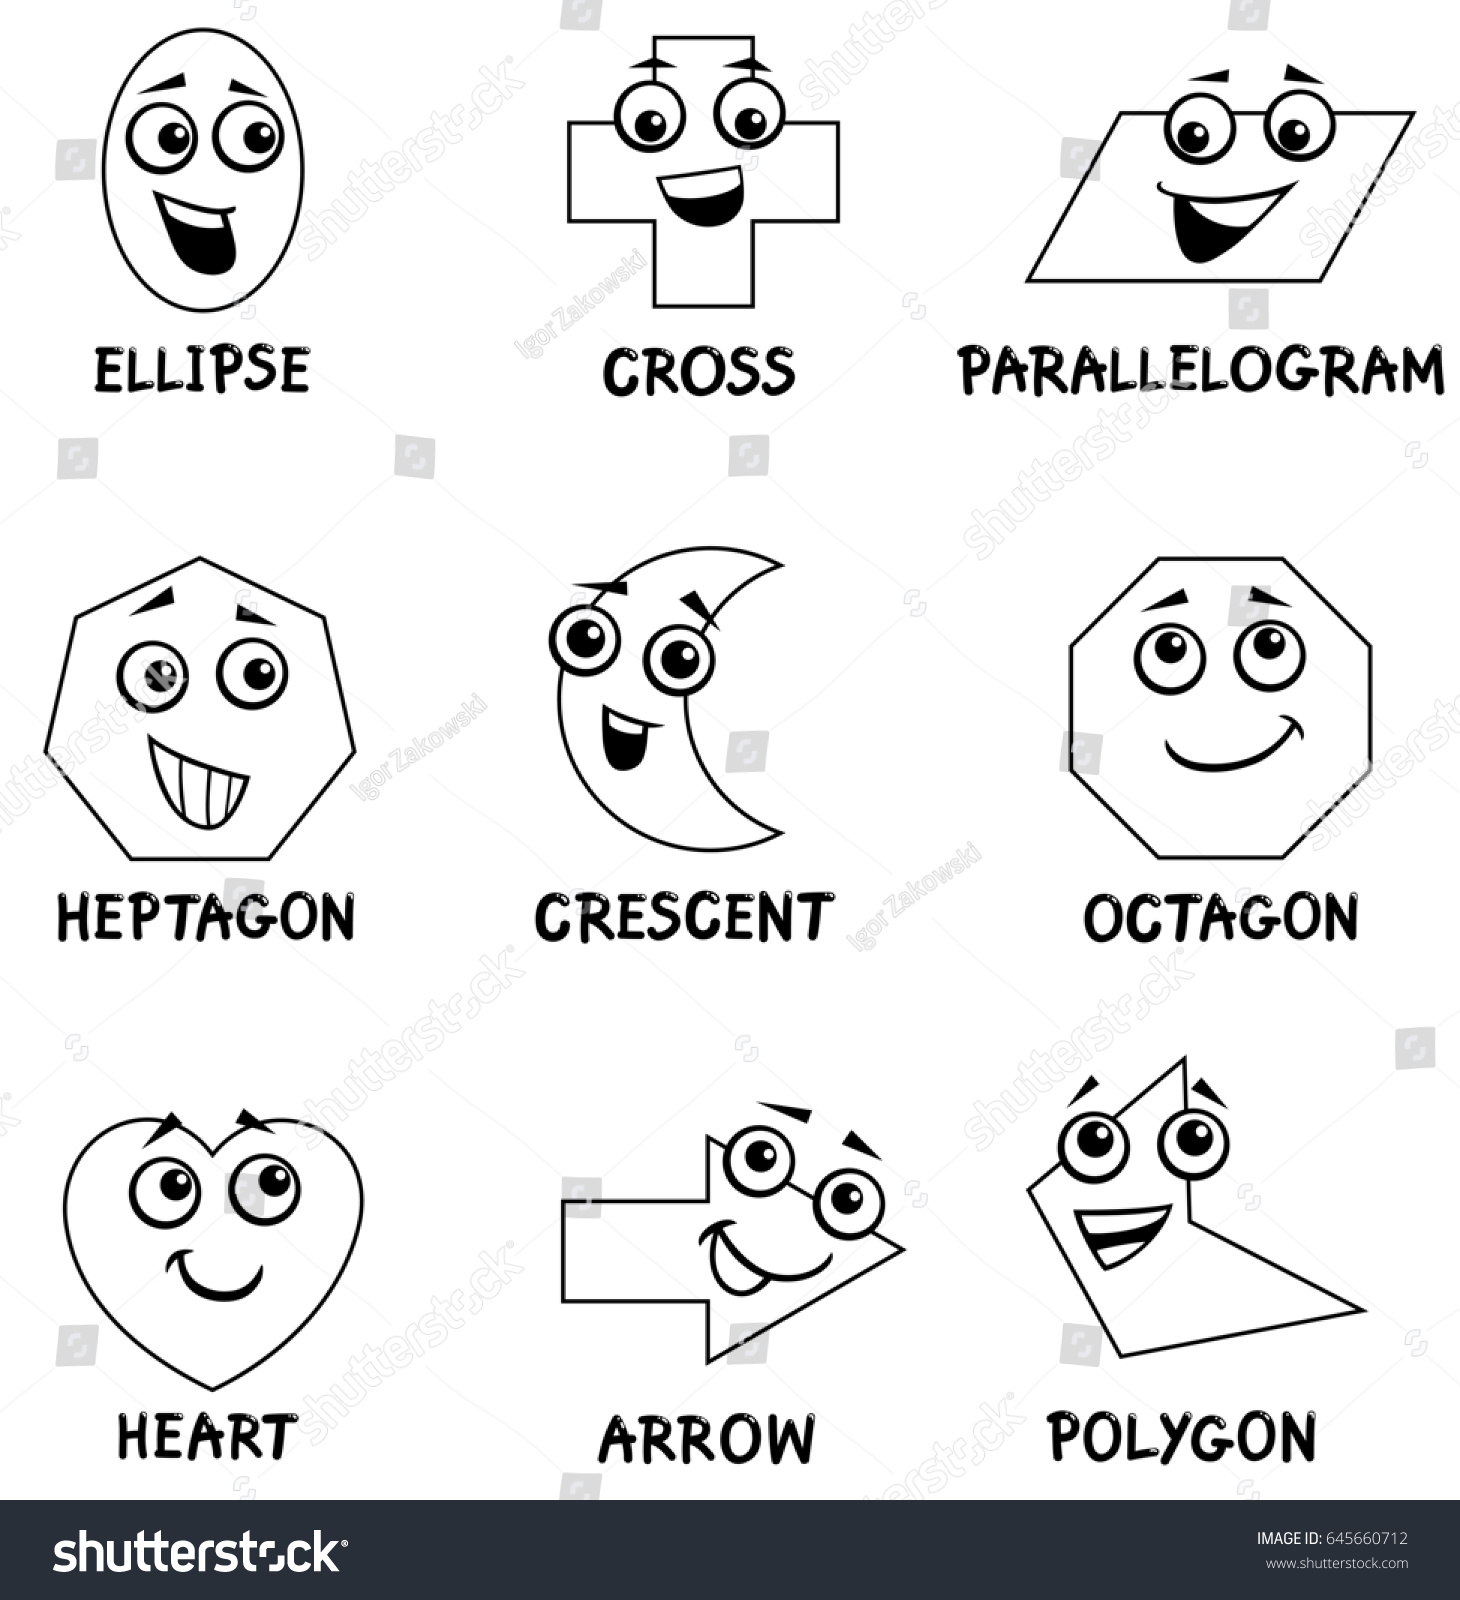 Black And White Cartoon Illustration Of Basic Geometric Shapes Funny Characters For Kids Coloring Book